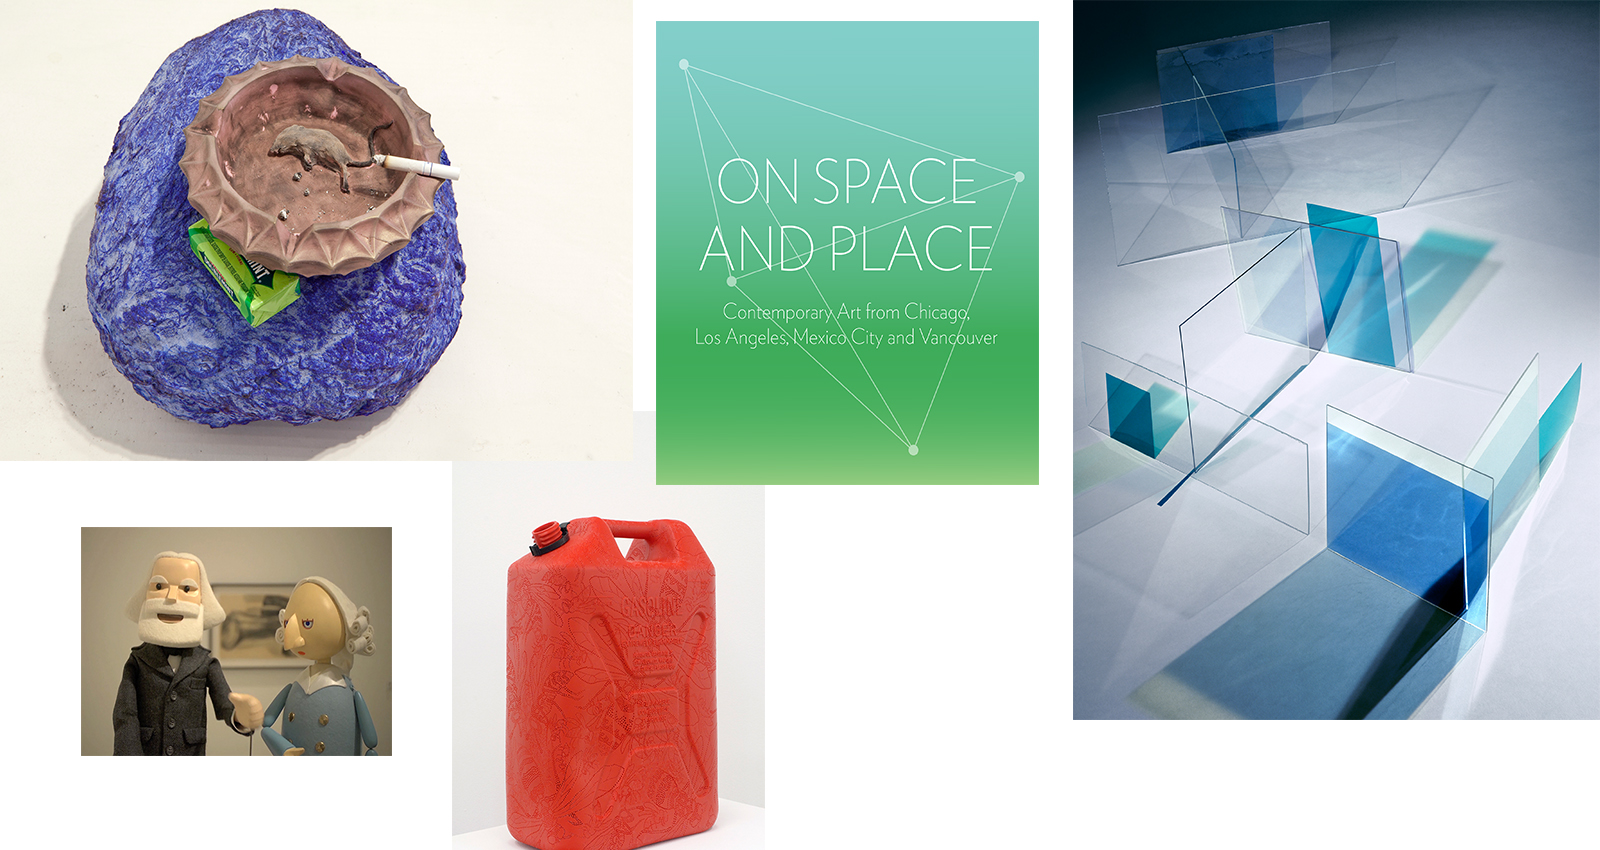 On Space and Place